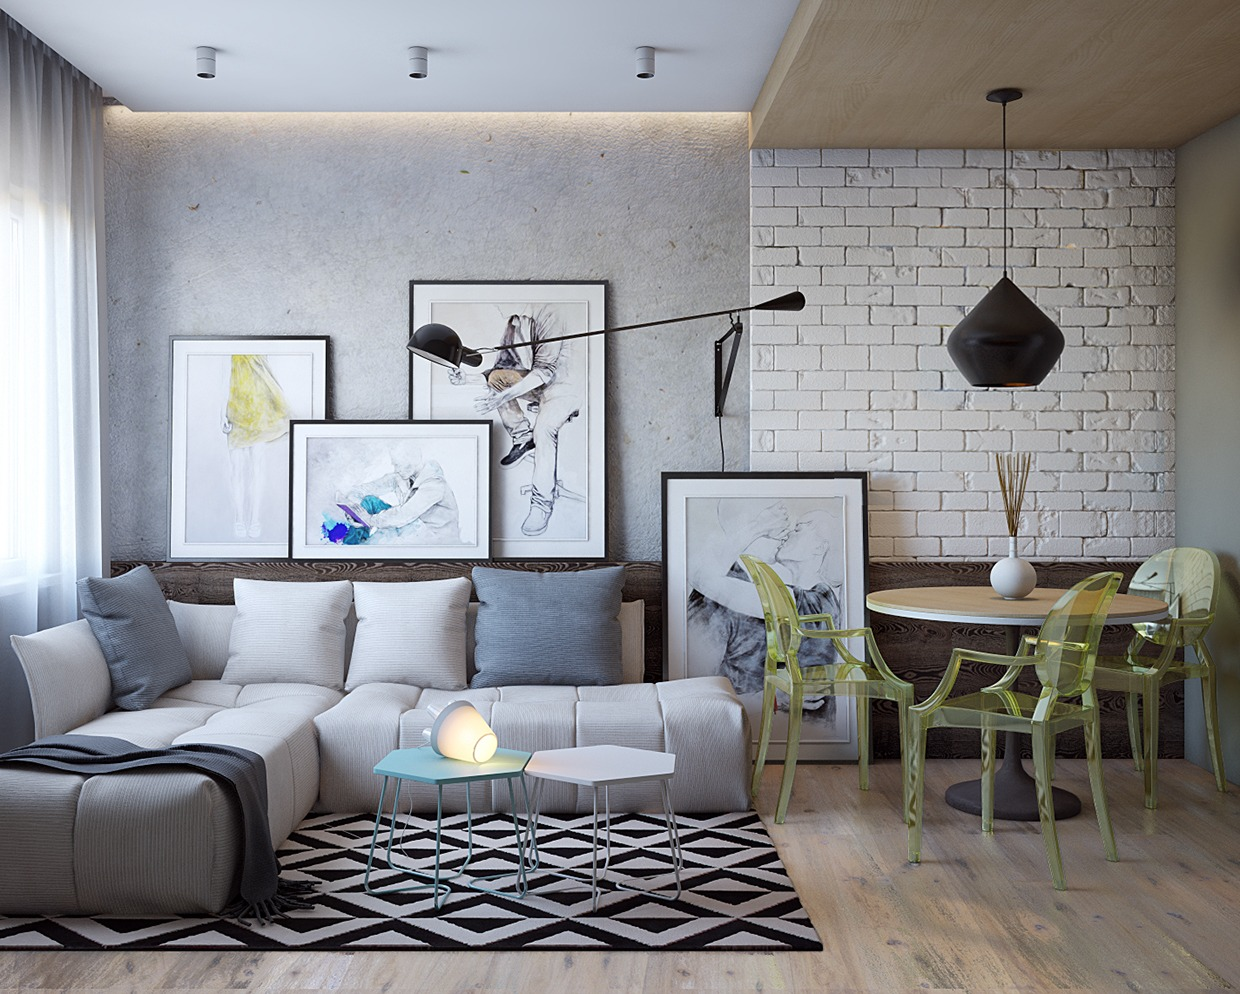 3 Types Chic Home Interior Designs Which Show An Eclectic Decoration Ideas Around It